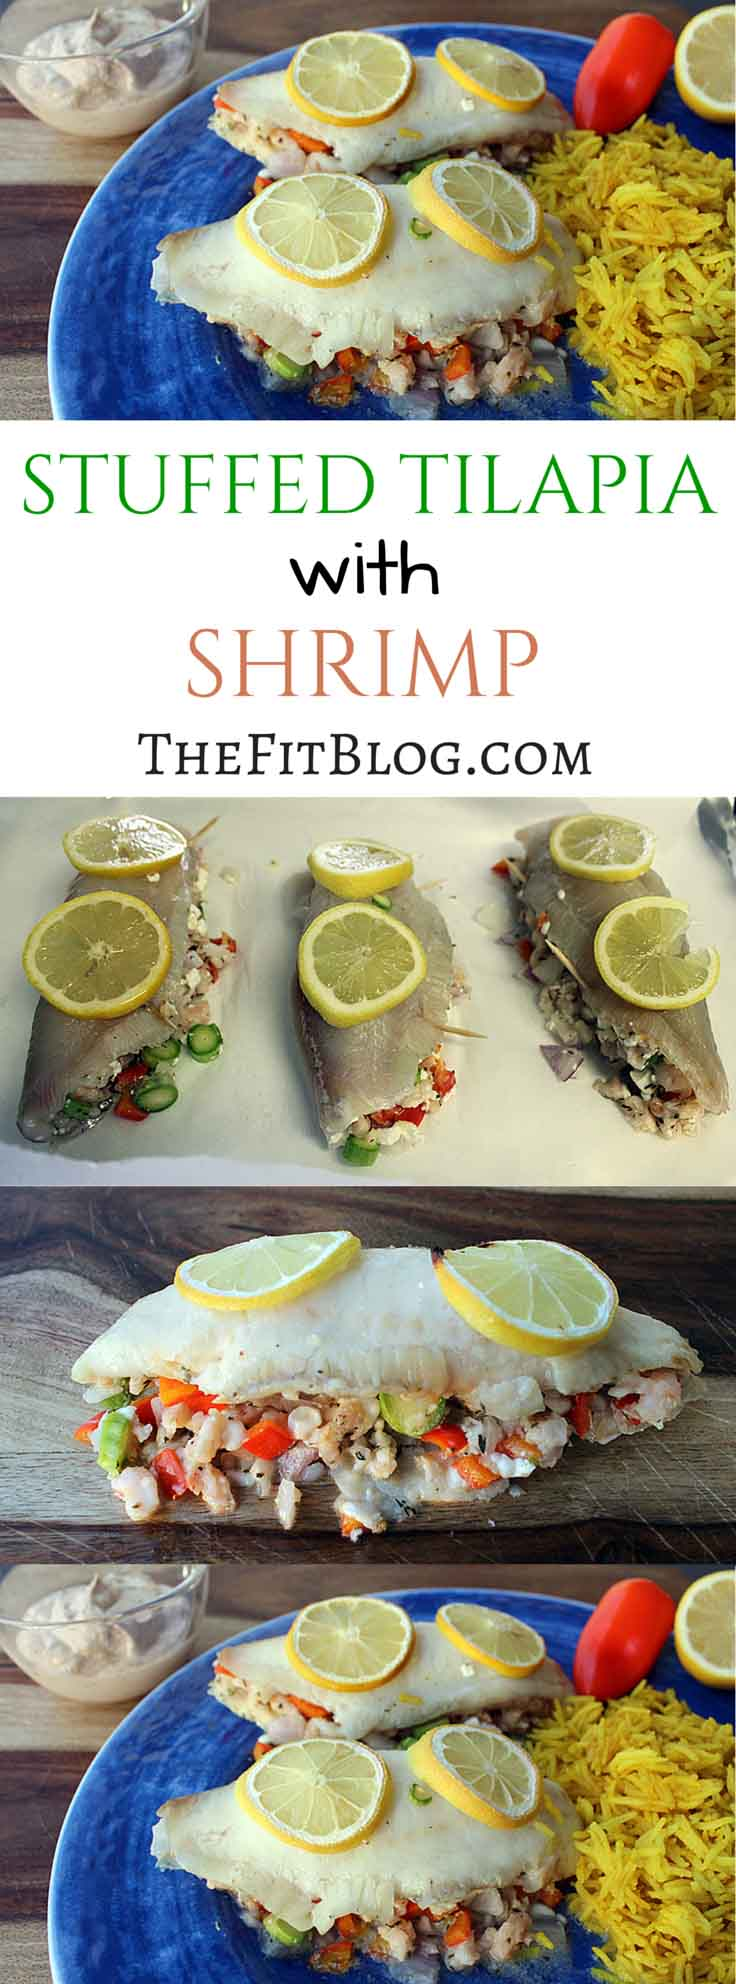 This tilapia stuffed with shrimp is definitely something I will make again, even for guests. It was super easy to make but looked like something you would get in a Mediterranean restaurant.